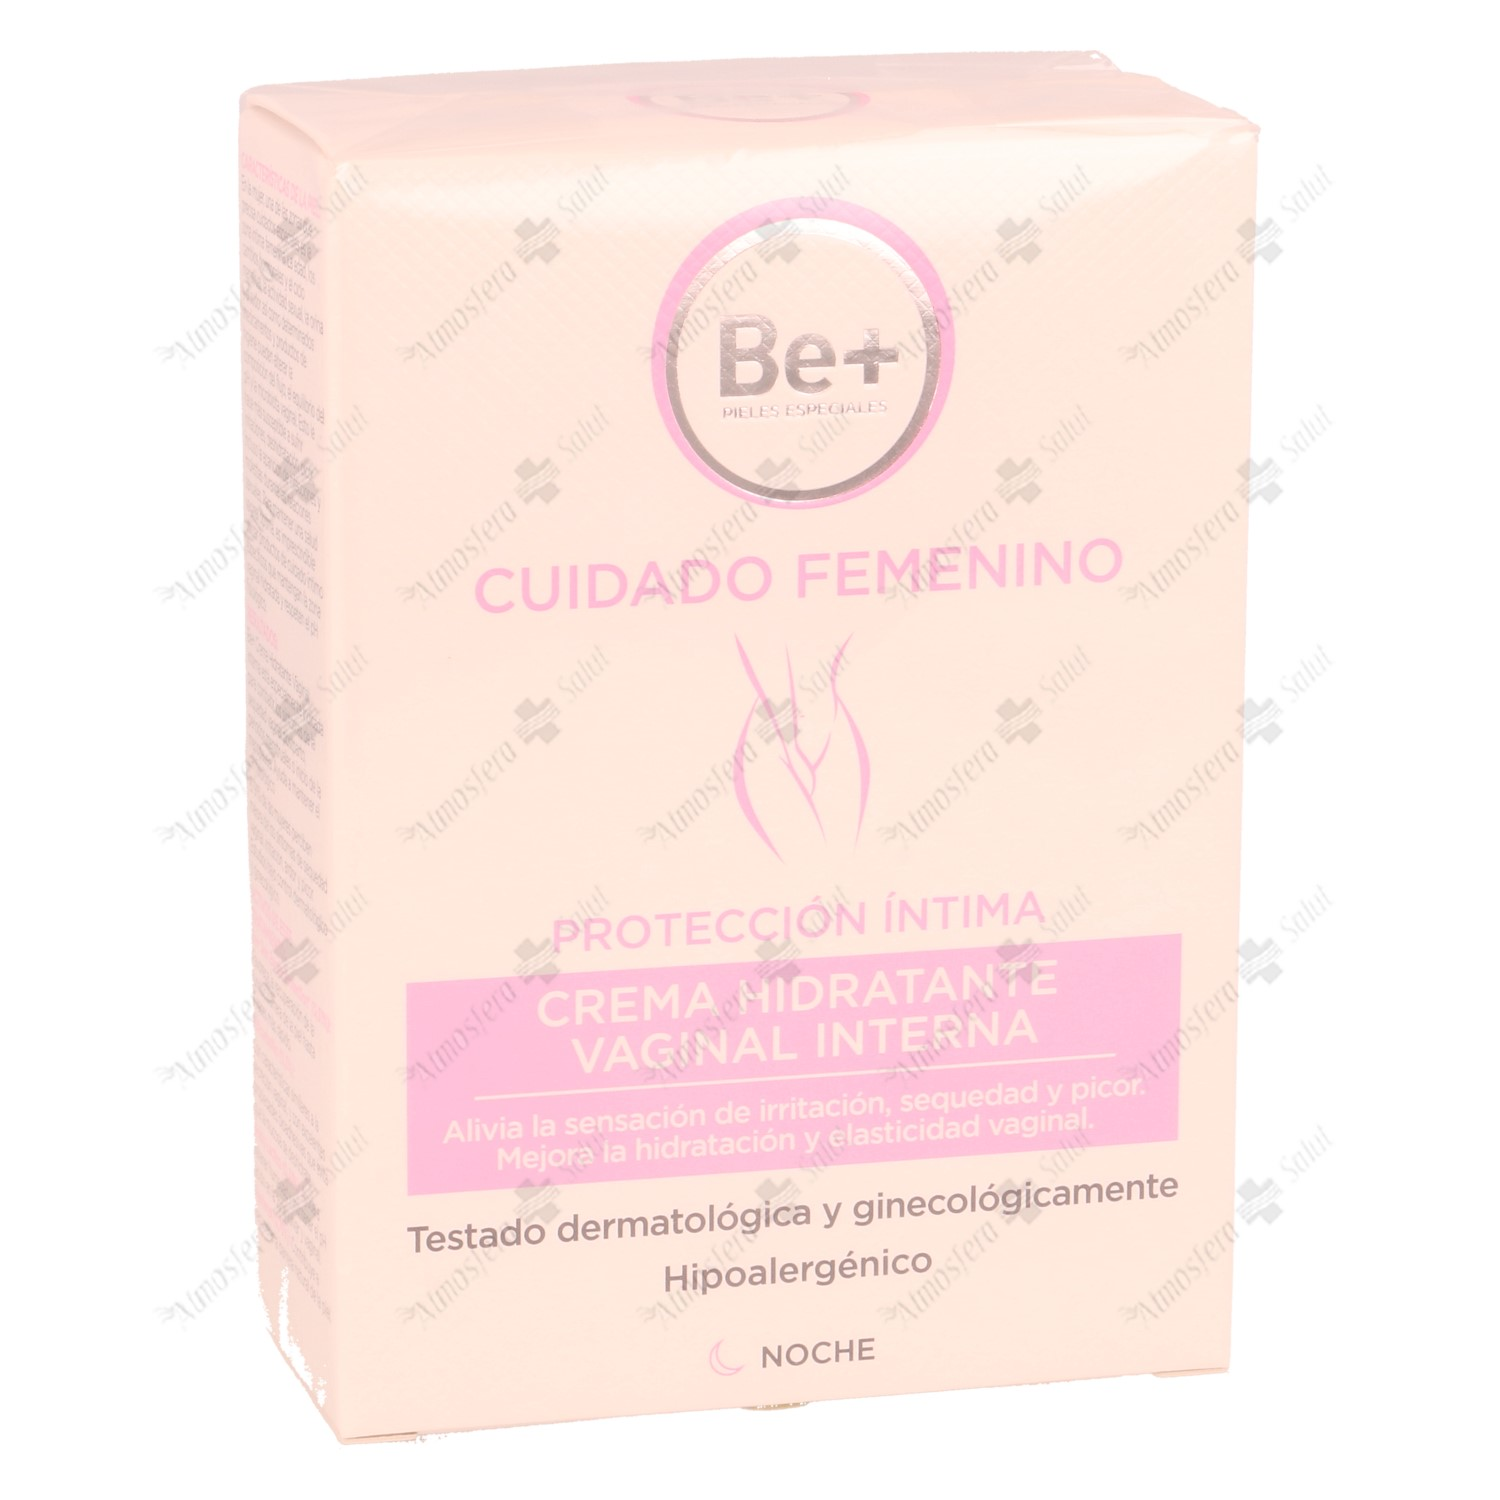 BE+ CREMA HIDRATANTE INTIMA INTERNA 8 X 6 ML